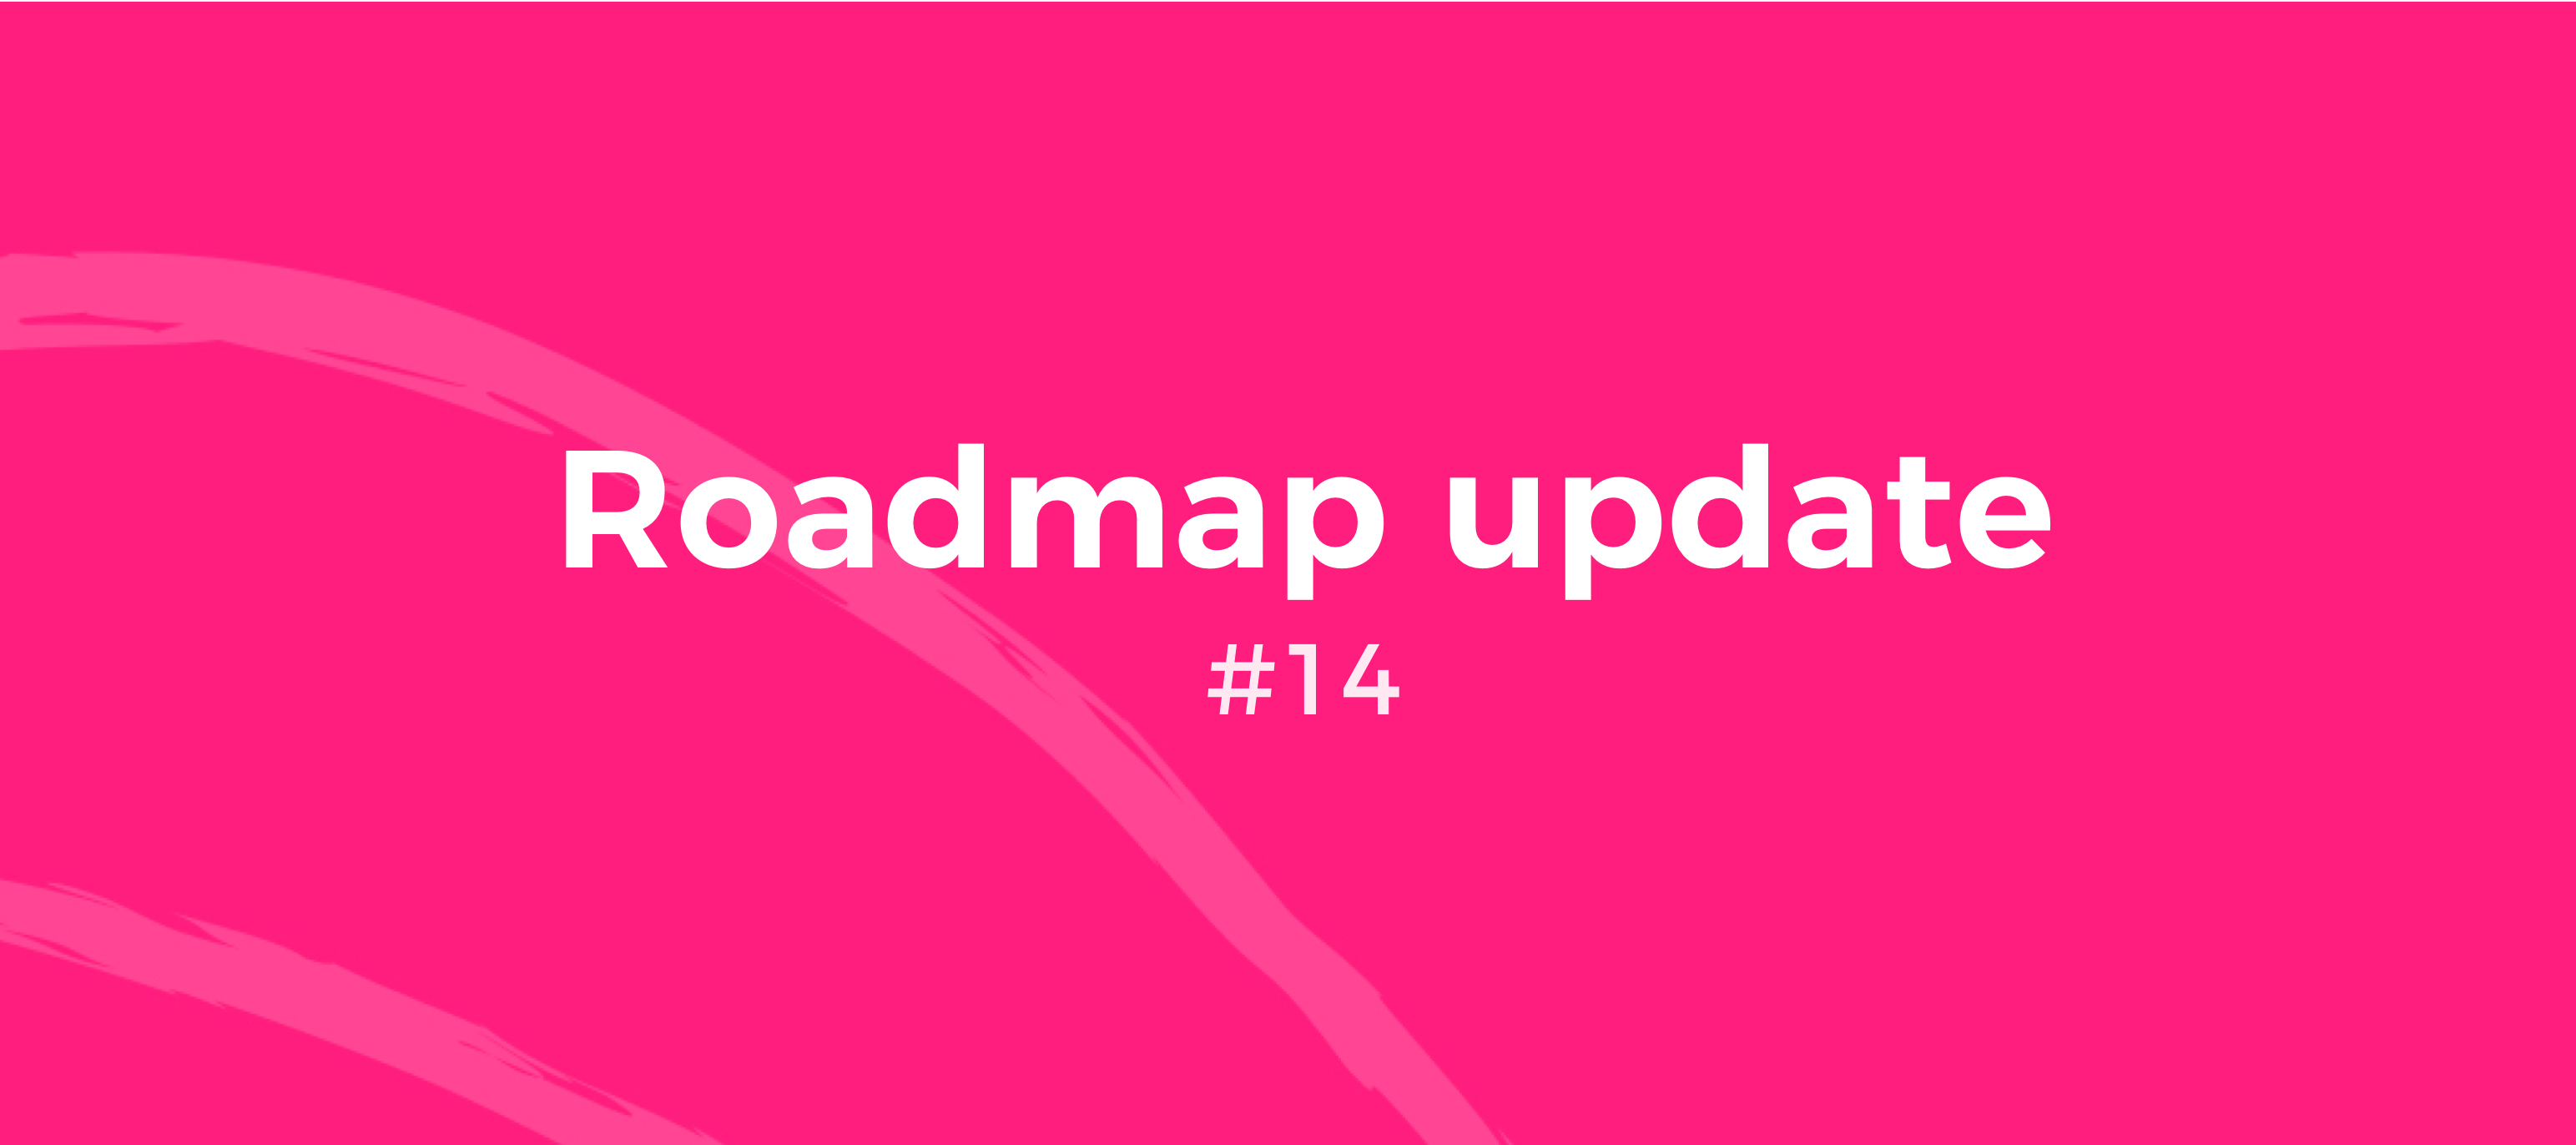 Roadmap update #14